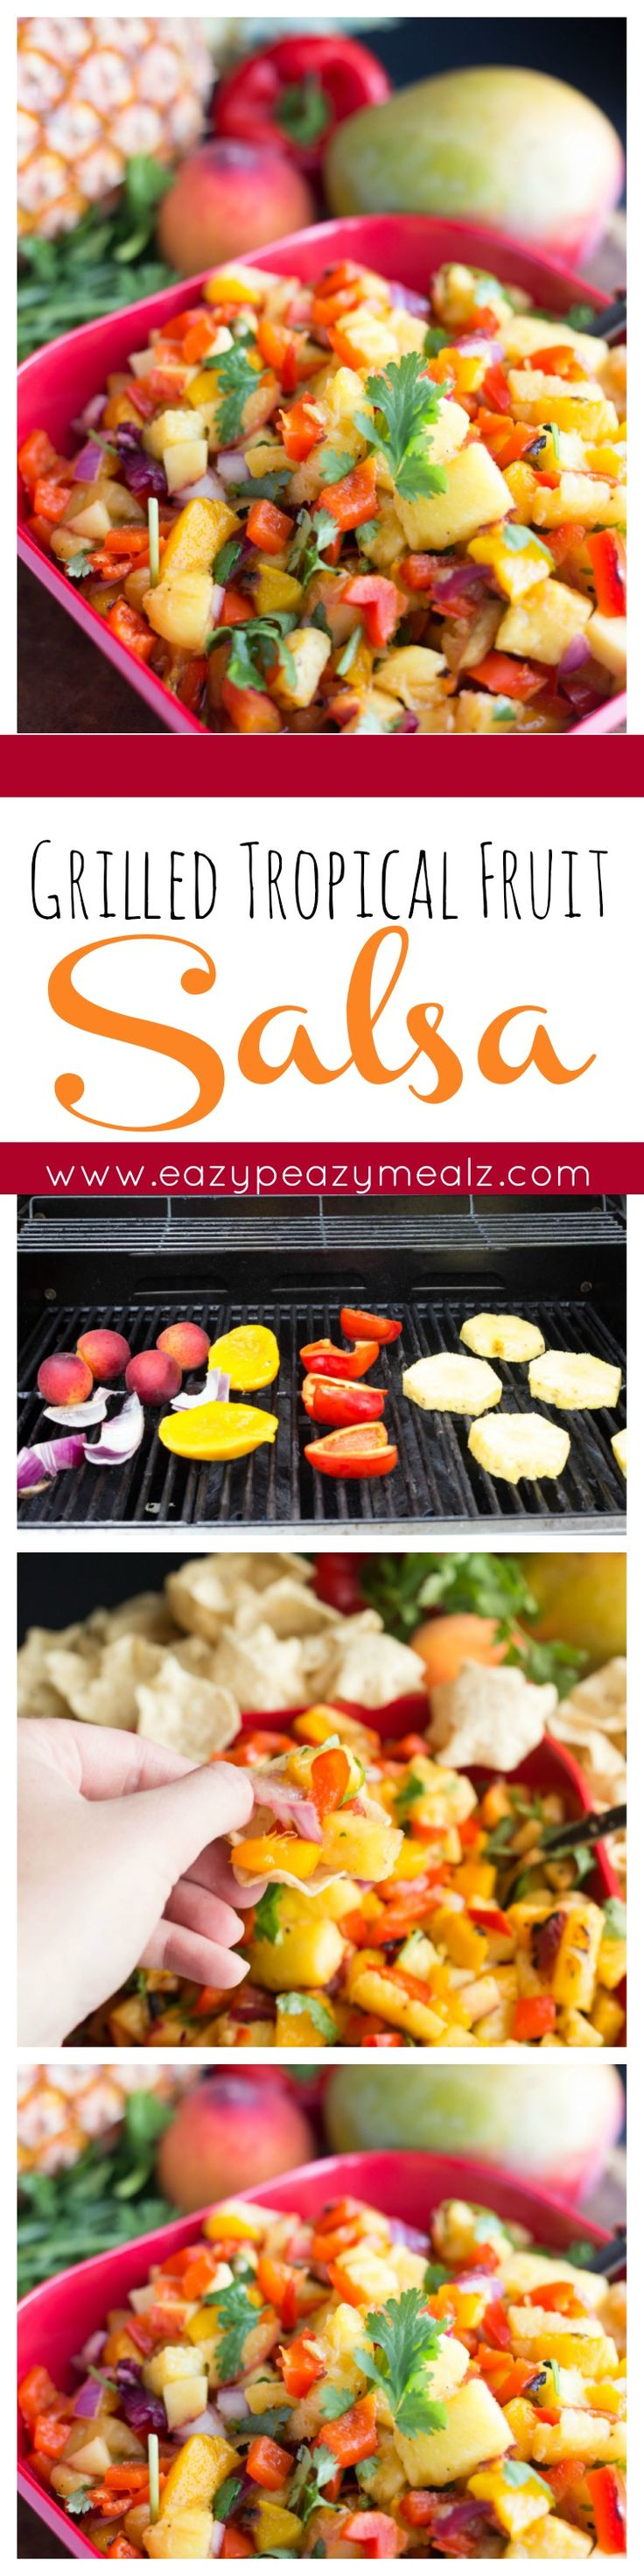 Fruit salsa made from grilled tropical fruit like mangos and pineapples, with the addition of sweet peaches, red peppers and onions, and of course cilantro and limes, essential salsa ingredients. - Eazy Peazy Mealz